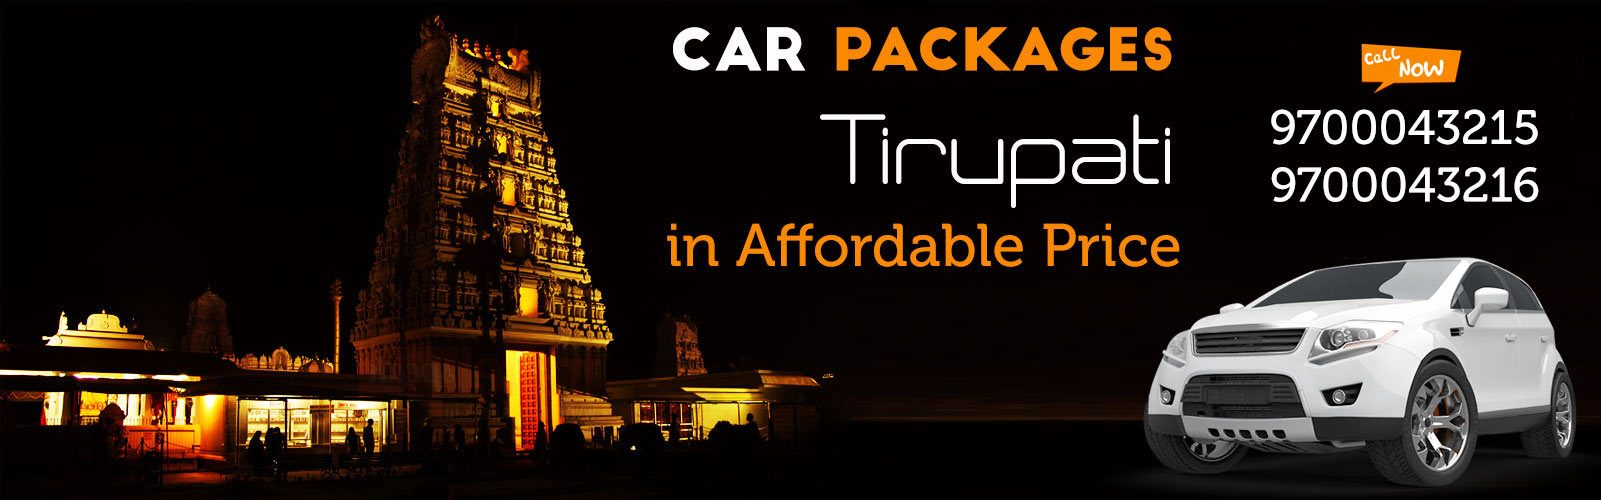 car rentals in tirupati